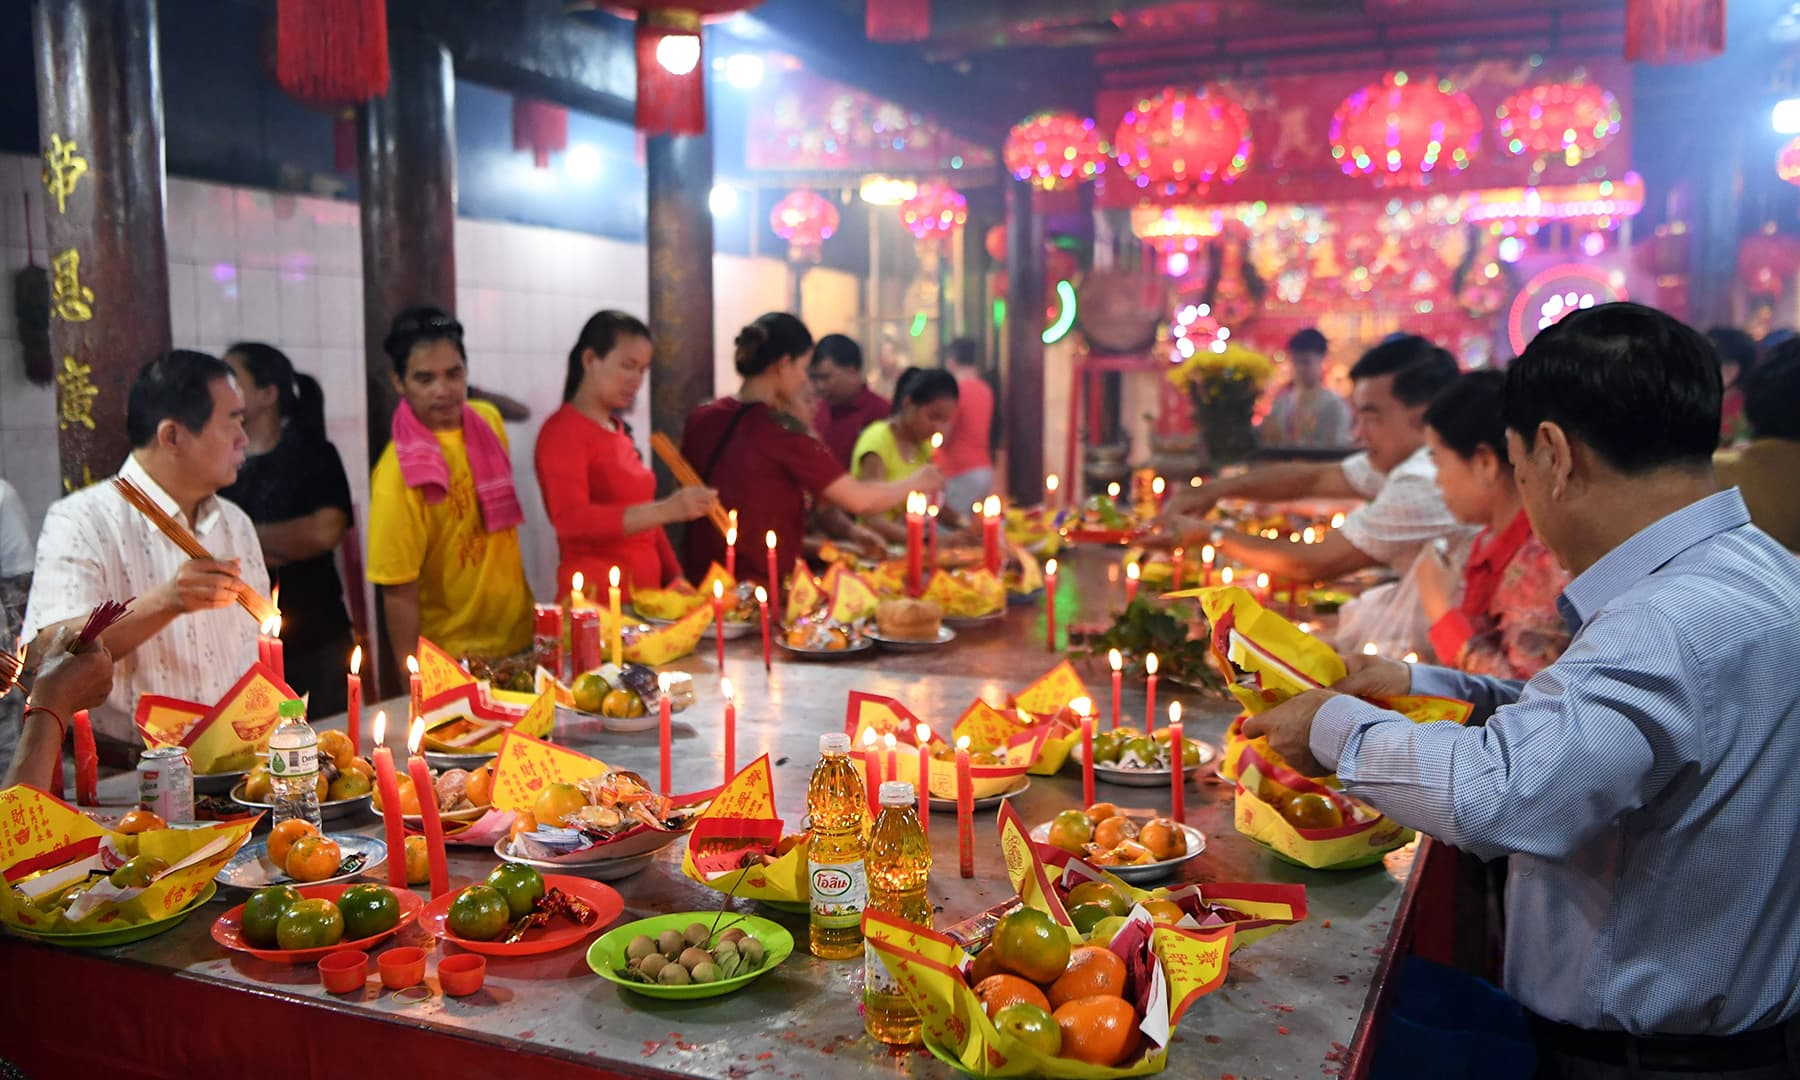 People pray during the Lunar New Year at a temple in Kandal Province, Cambodia on January 25, 2020. — AFP